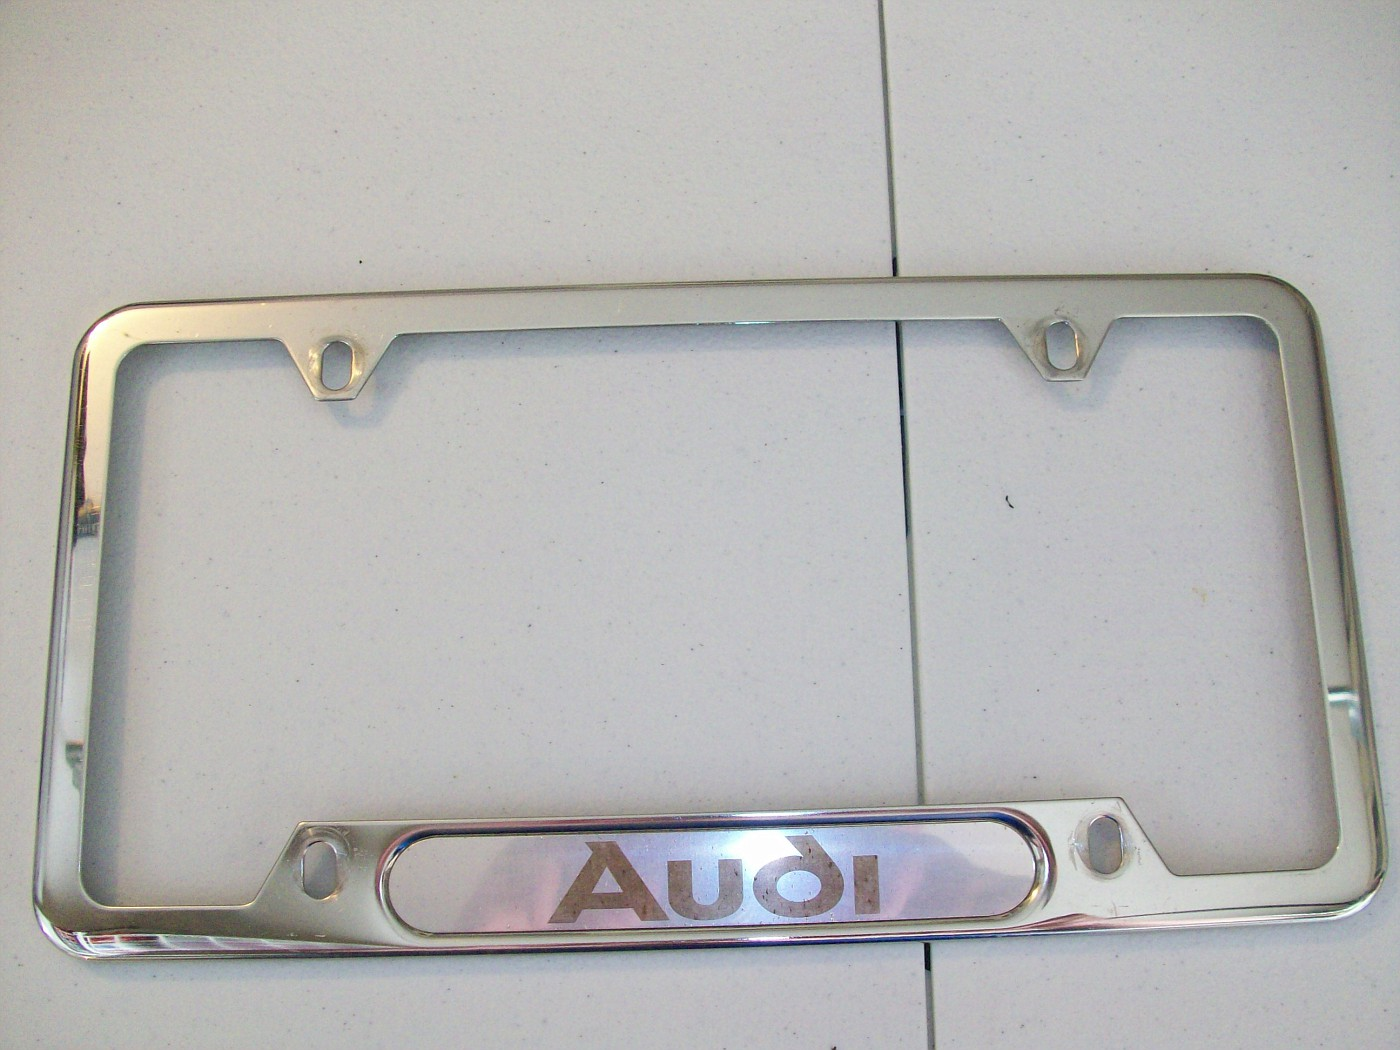 $Shipping Audi License Plate Frame - used